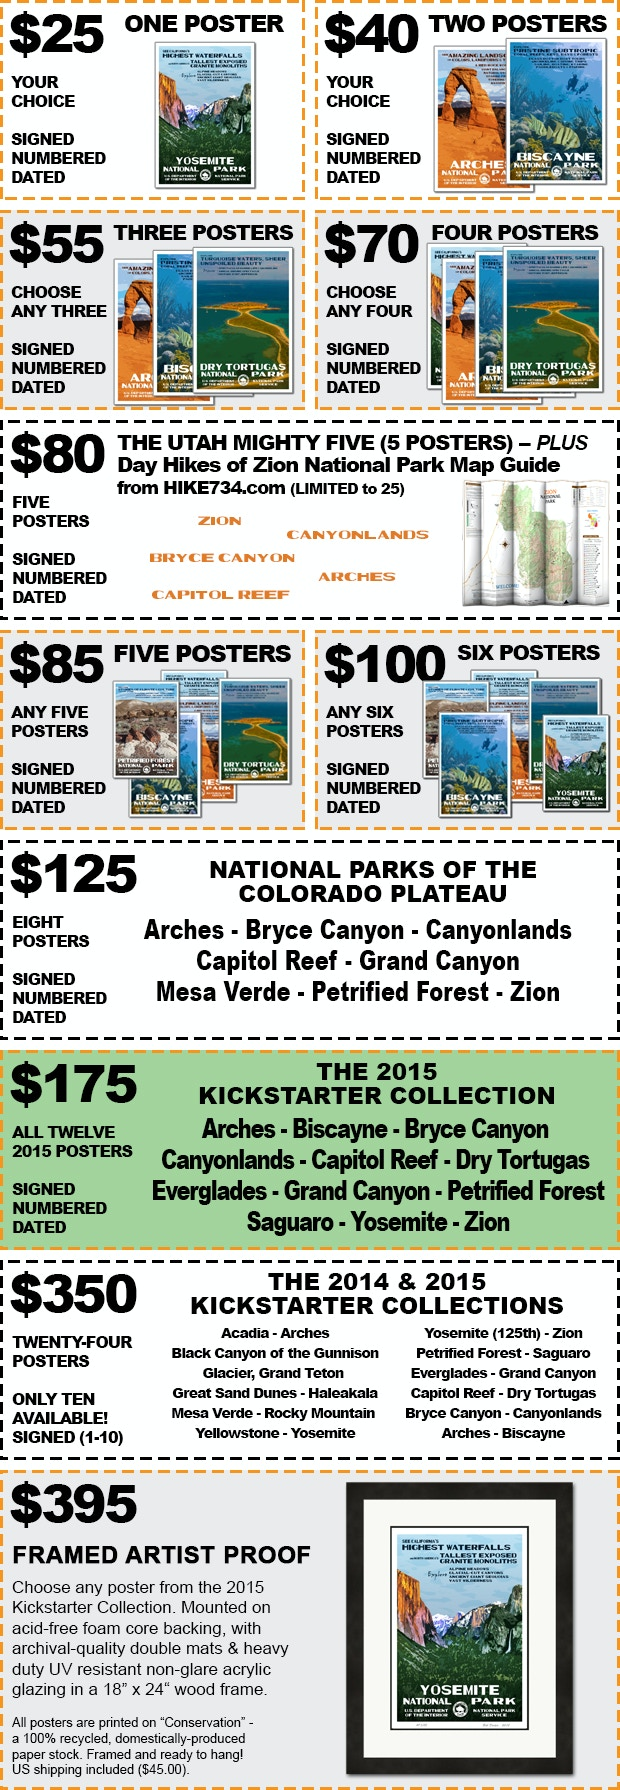 The National Park Poster Project 2015 by Robert Decker